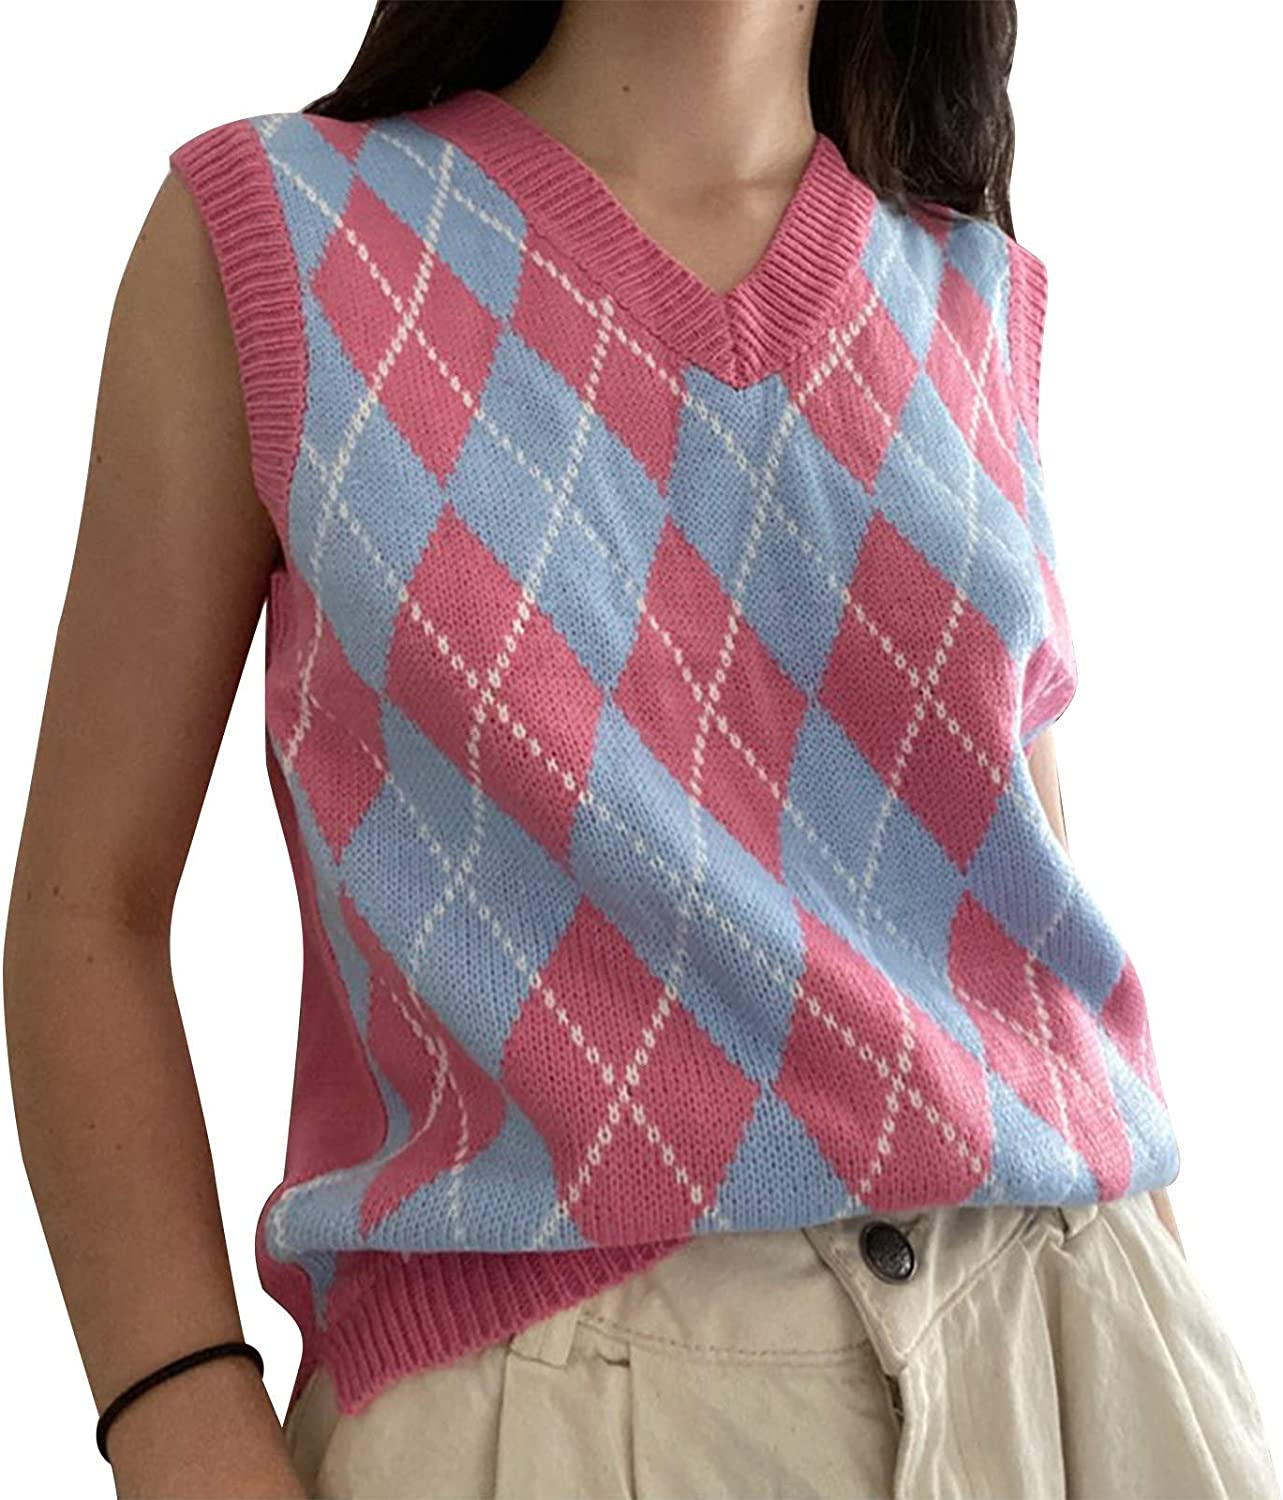 Women's Knitted Cotton V-Neck Vest JK Uniform Pullover Y2k 90s E-Girl Sleeveless Crop Sweater School Cardigan (Checkered Water Pink,Large)